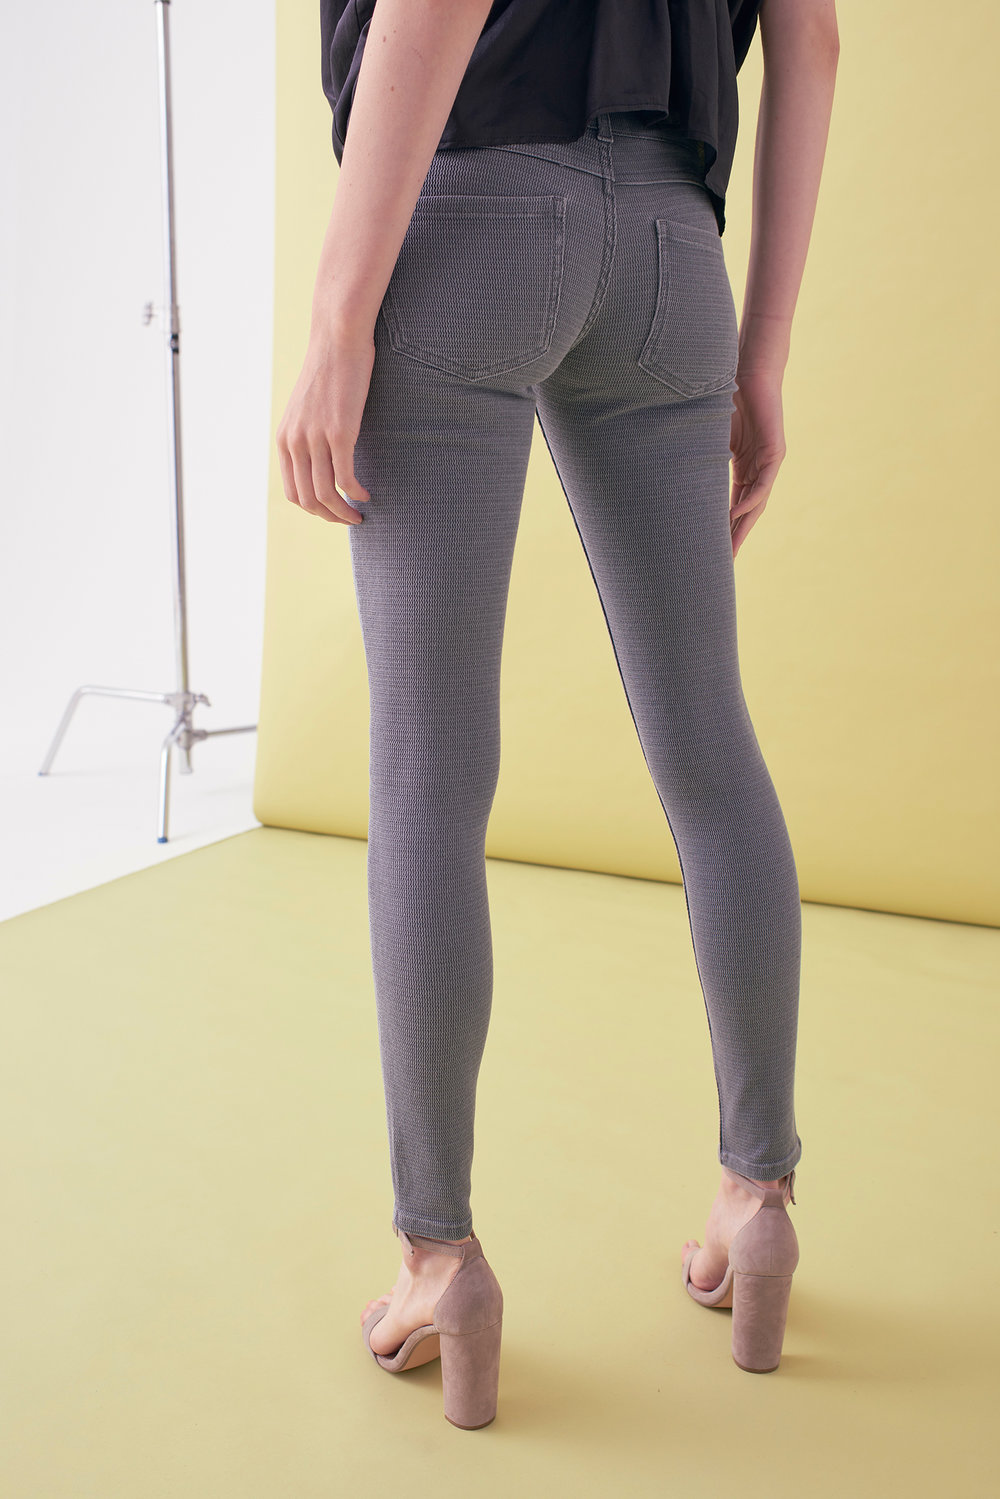 Sarah_Swann_SS17_09_Textured_Stretch_Cotton_Skinny_Trouser_Pewter_B.jpg